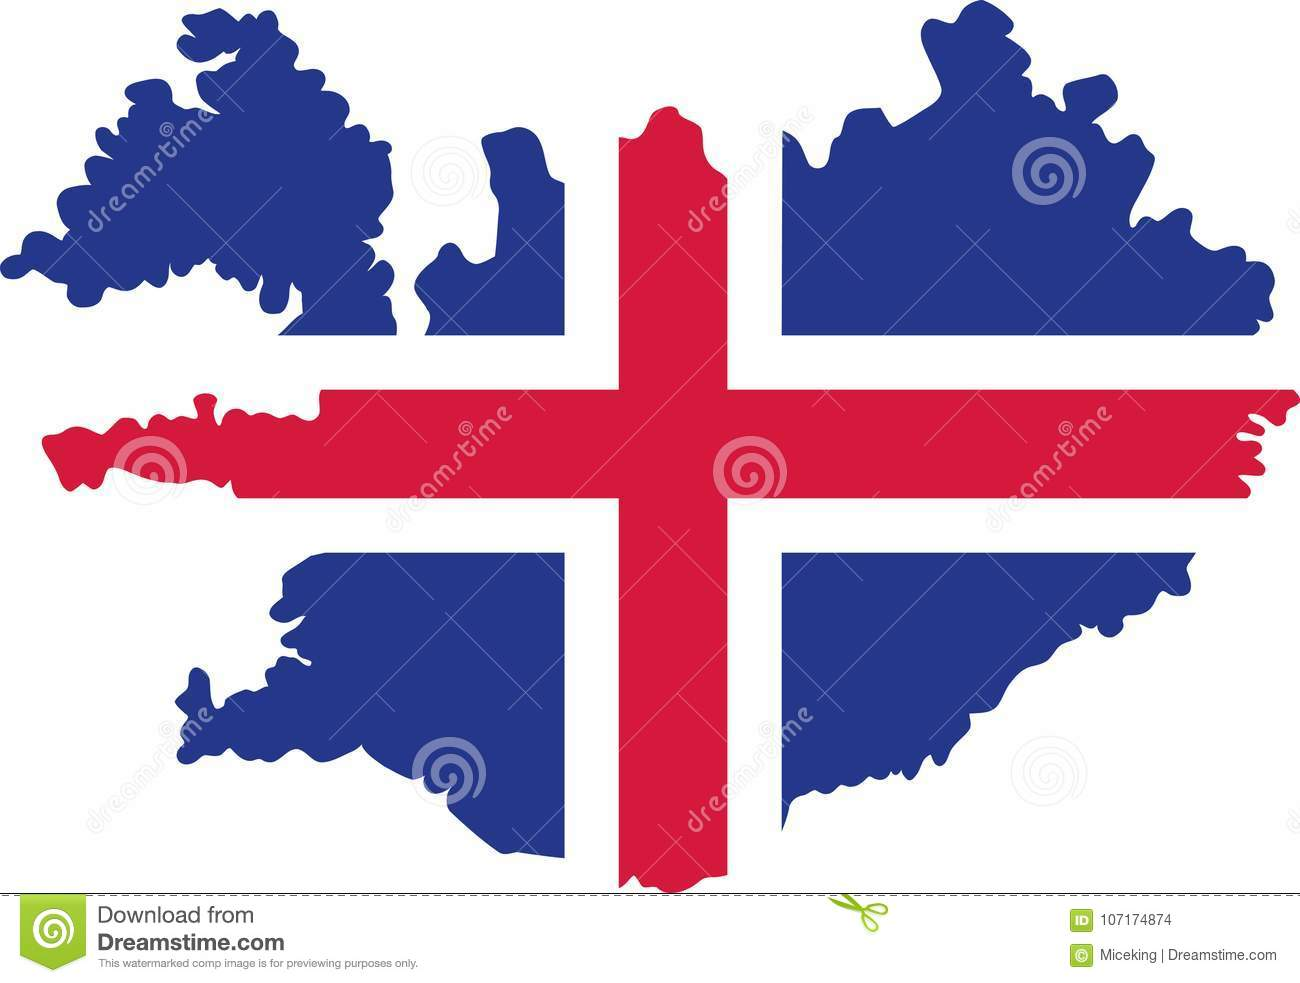 Iceland map with flag stock vector. Illustration of symbol - 107174874